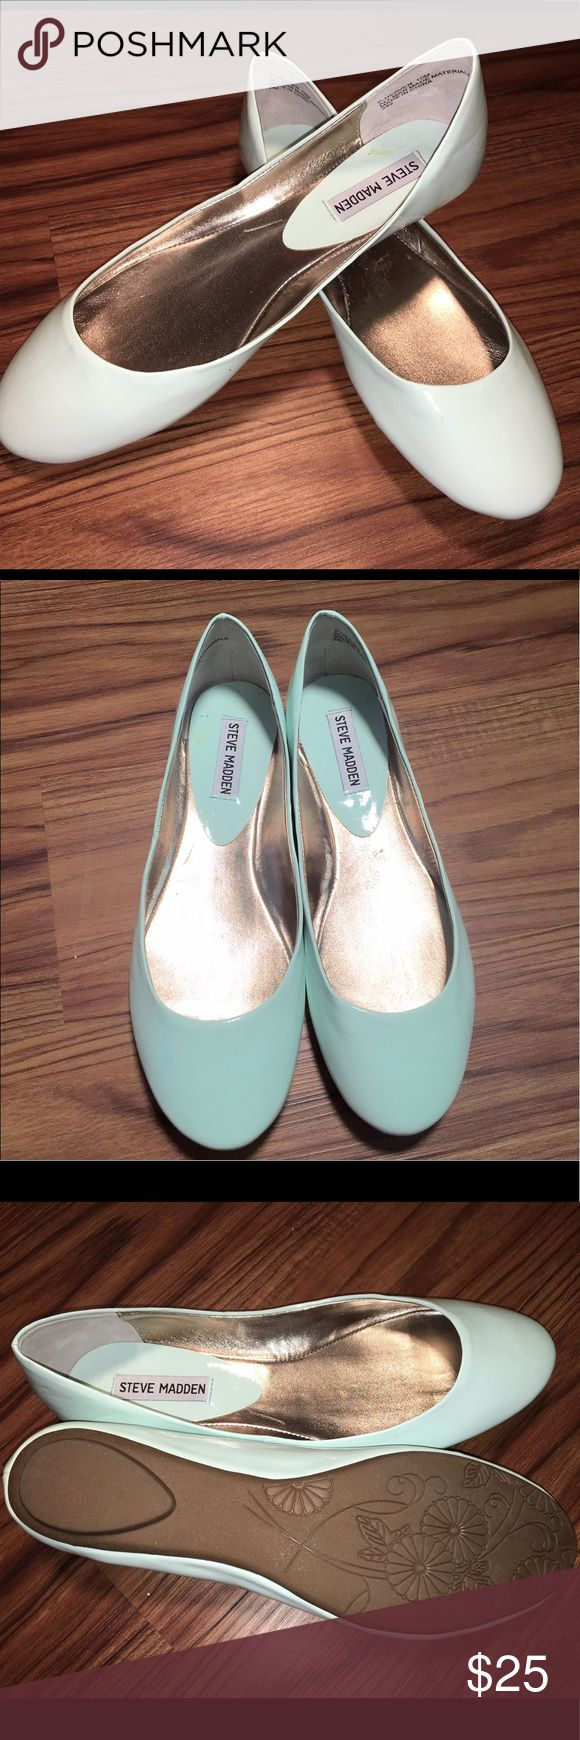 💠SOLD💠NWOT aqua patent leather Steve Madden flat 💠SOLD💠NWOT Steve Madden patent leather light Aqua flats. Size 10. Rubber soles. Brand new, no box, smoke free home. Super cute and perfect for spring florals and dresses. #steve #madden #10 #nwot #aqua #flats #shoes #spring ❌no trades❌ Steve Madden Shoes Flats & Loafers